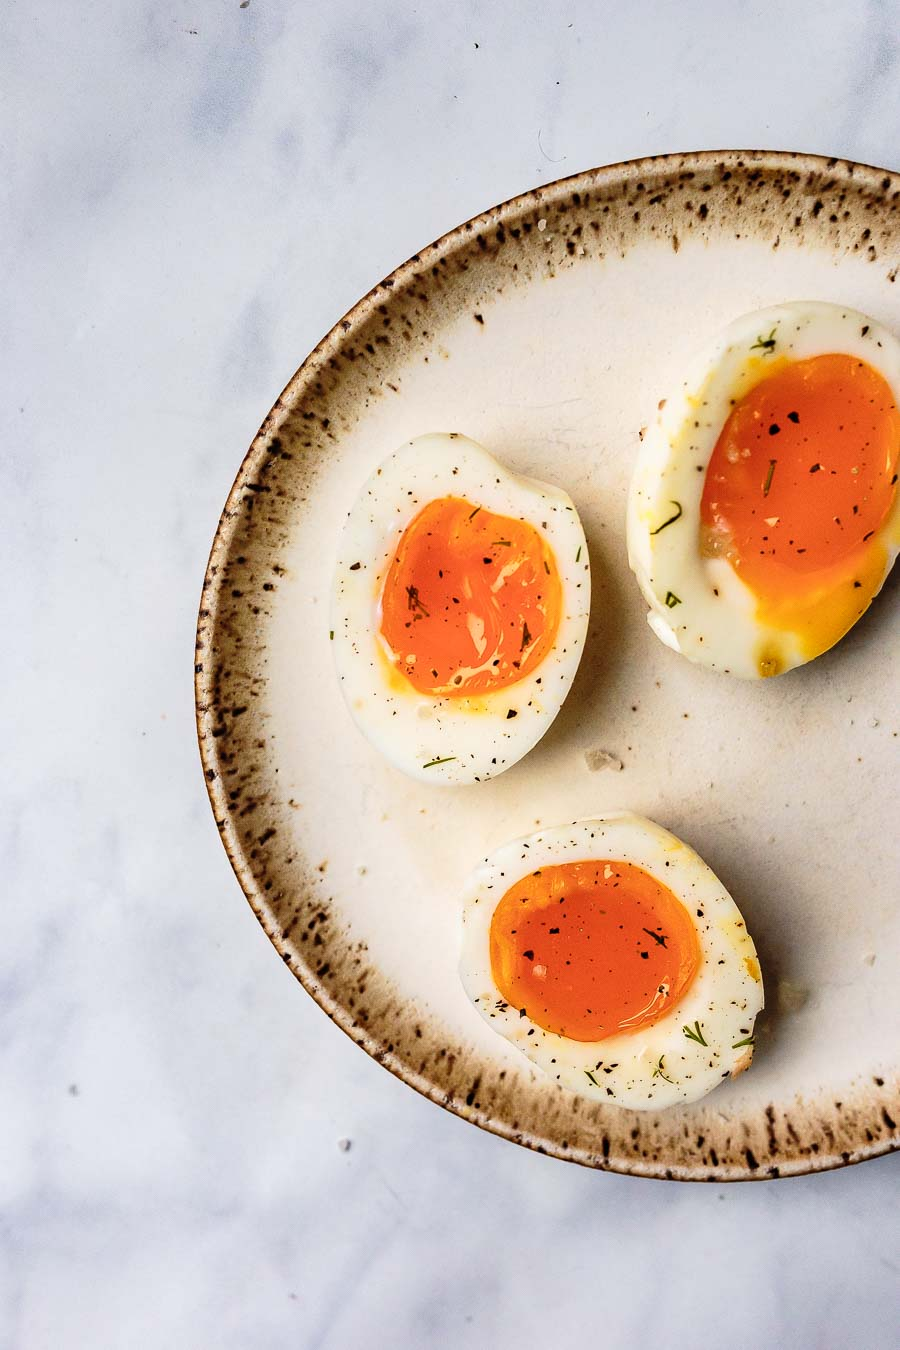 three jammy boiled eggs halved and resting on a stoneware place topped with salt and pepper